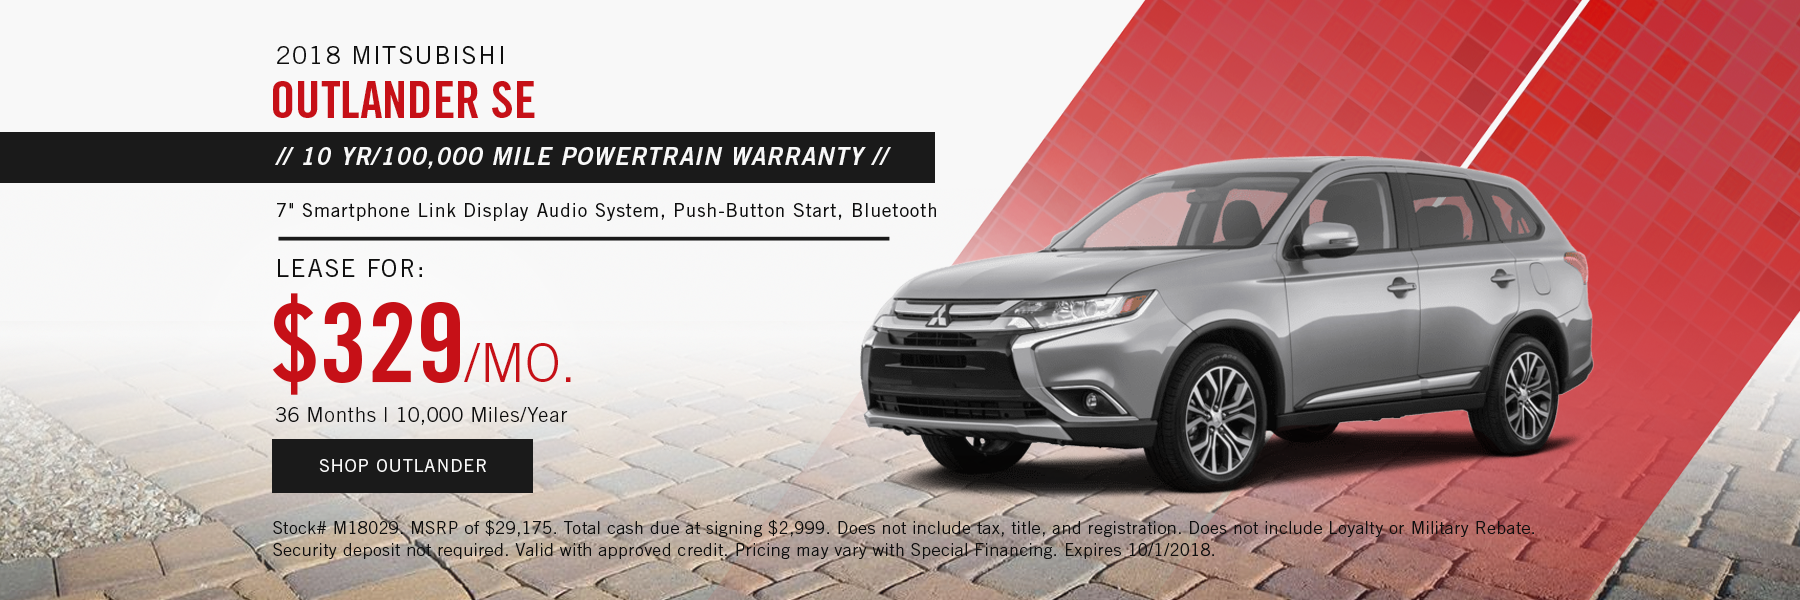 Mitsubishi Outlander Special Offer Concord, NH